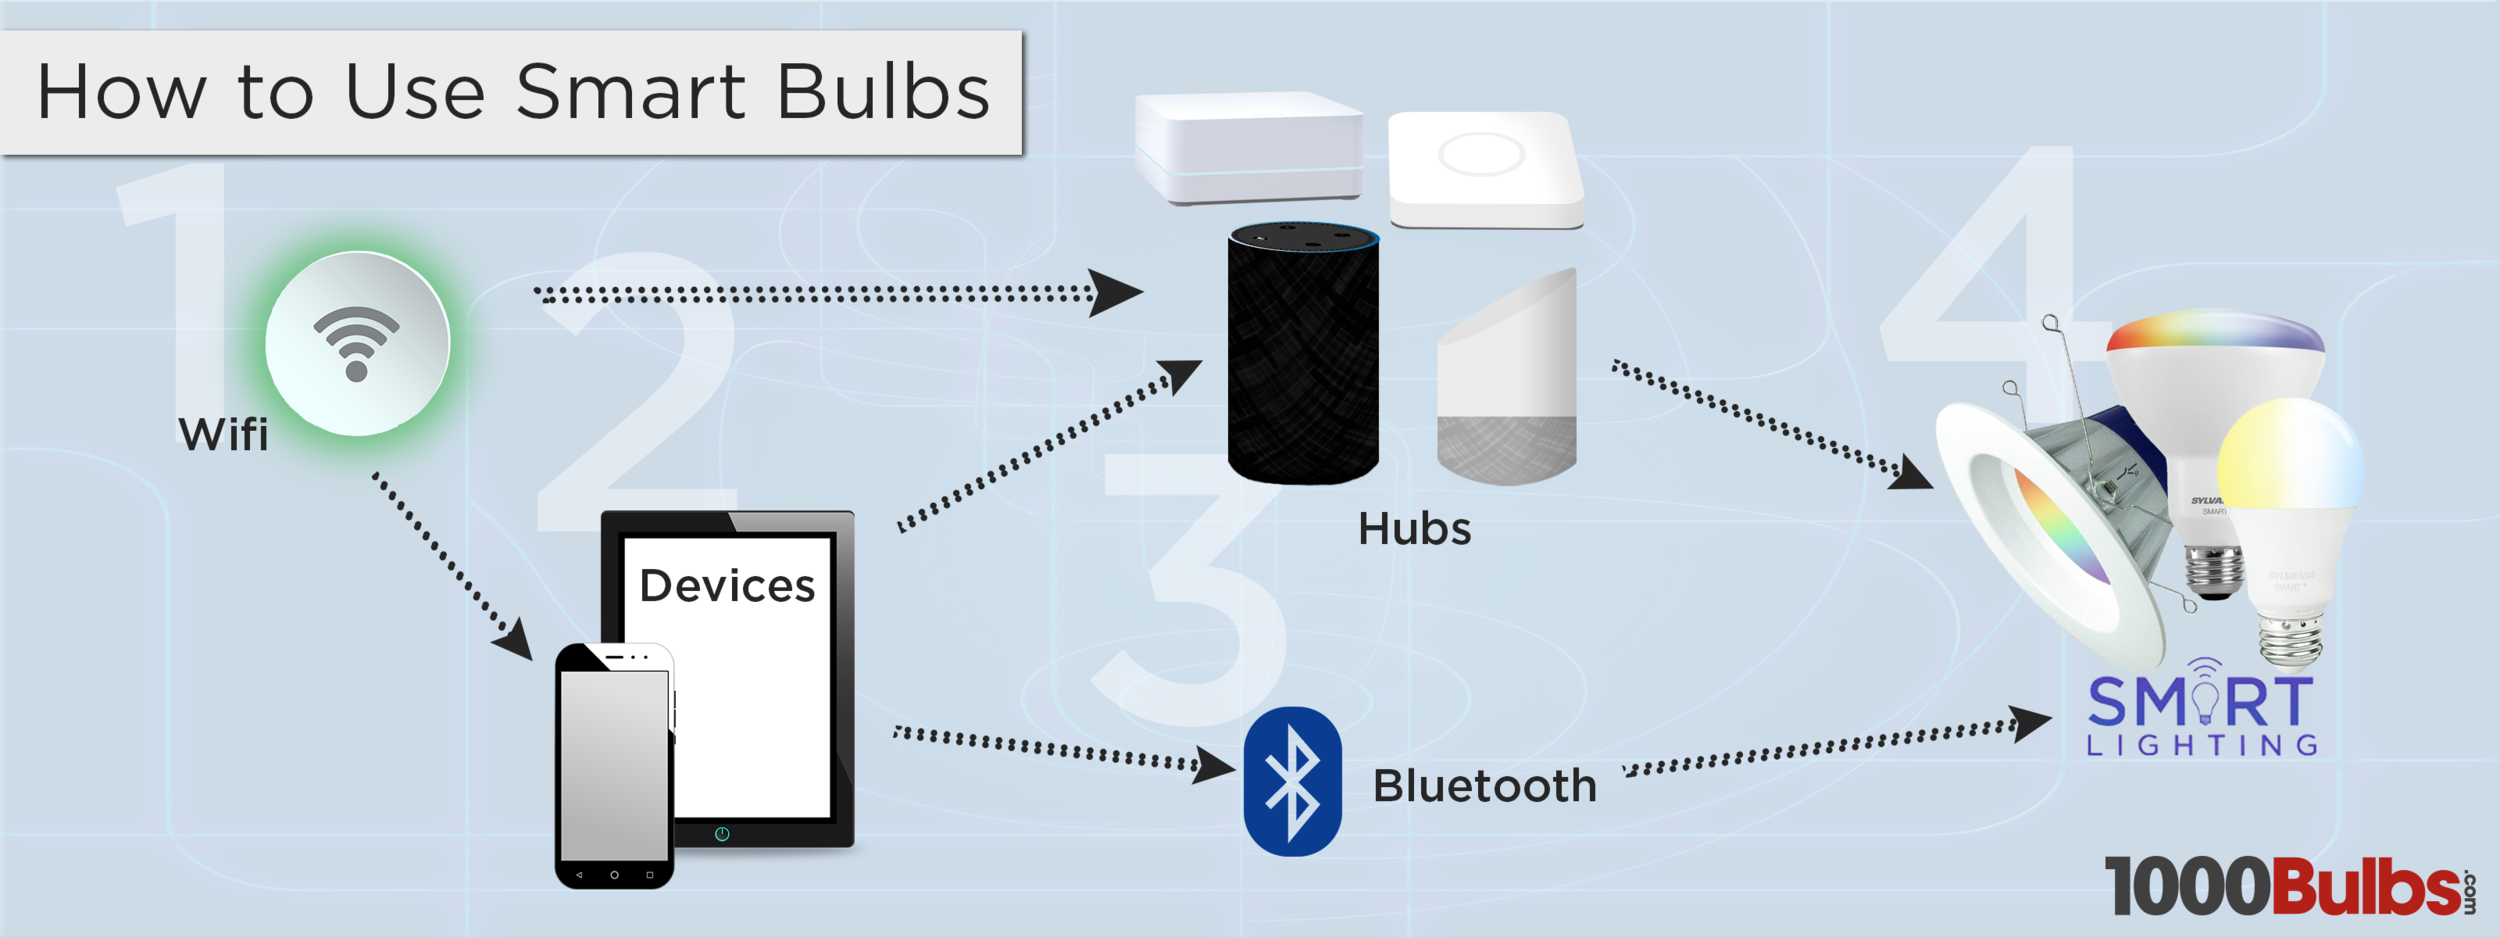 Connection #1: Wifi => Smart Bulbs (hub optional) Connection #2: Device => Bluetooth => Smart Bulbs Connection #3: Wifi => Device => Hub => Smart Bulbs